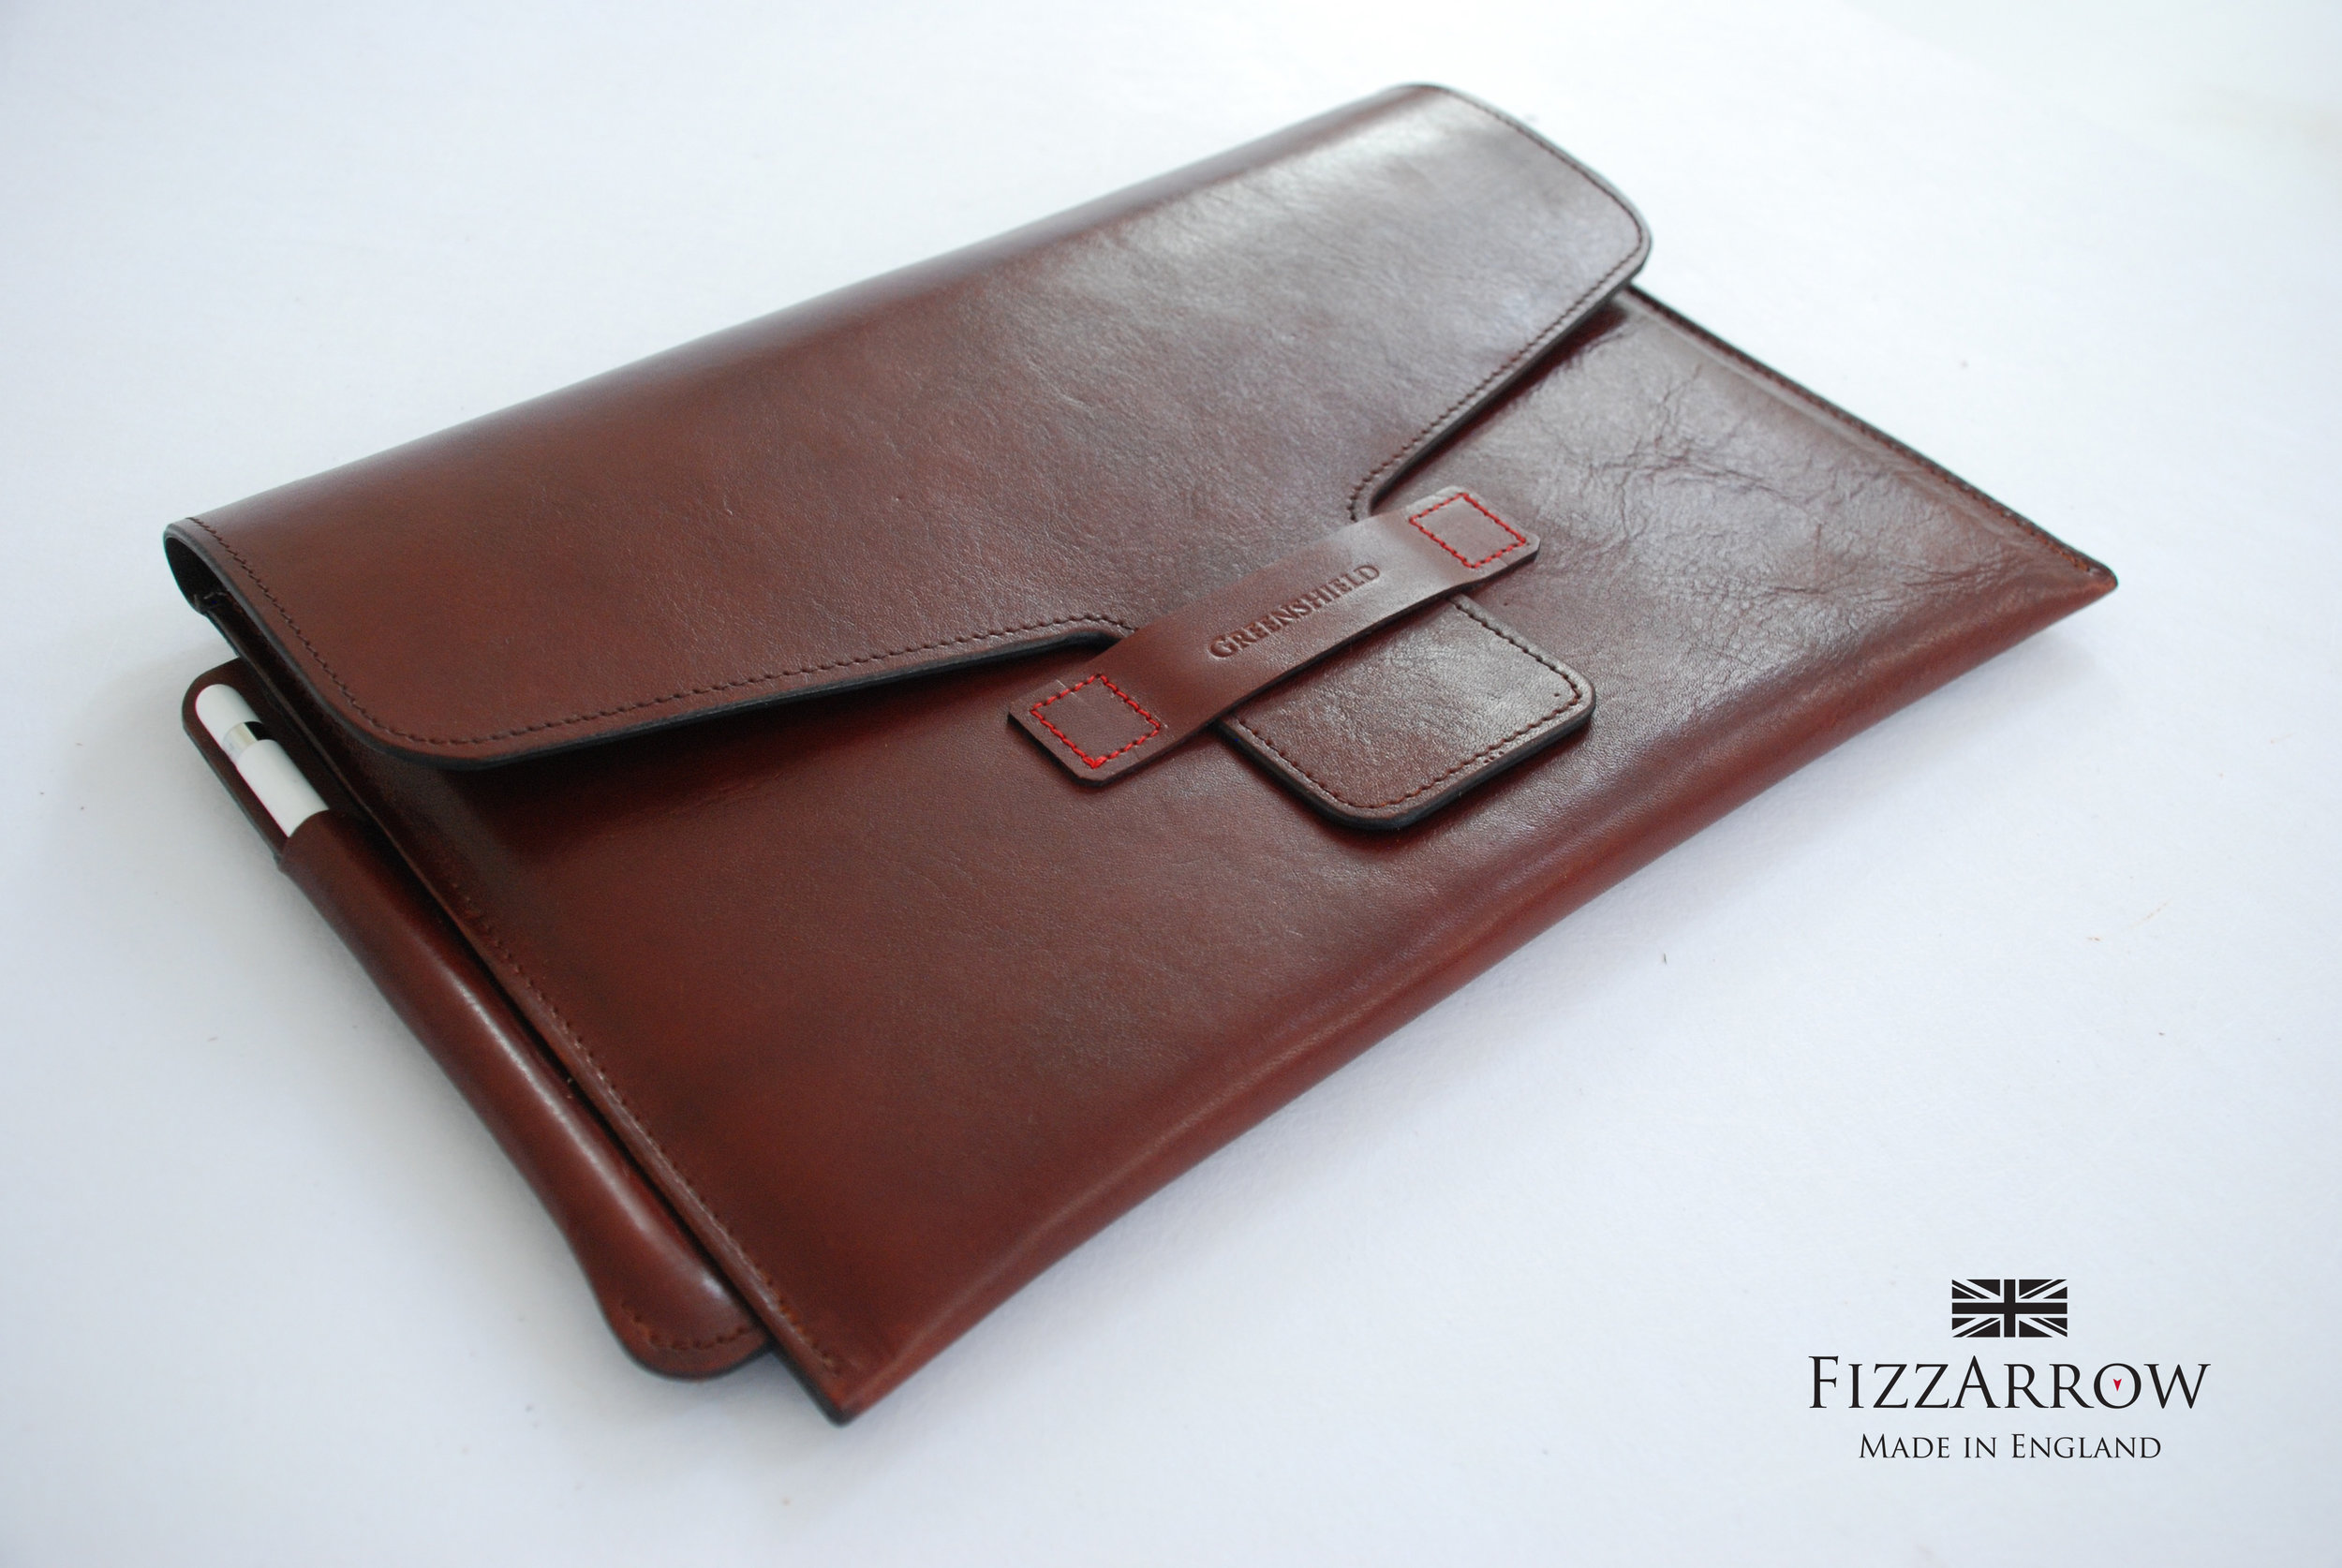 ©FizzArrow  iPad Pro leather case, lined with calf skin. Wet moulded pencil sleeve to fit Apple pencil. Tuscan leather. #redthread